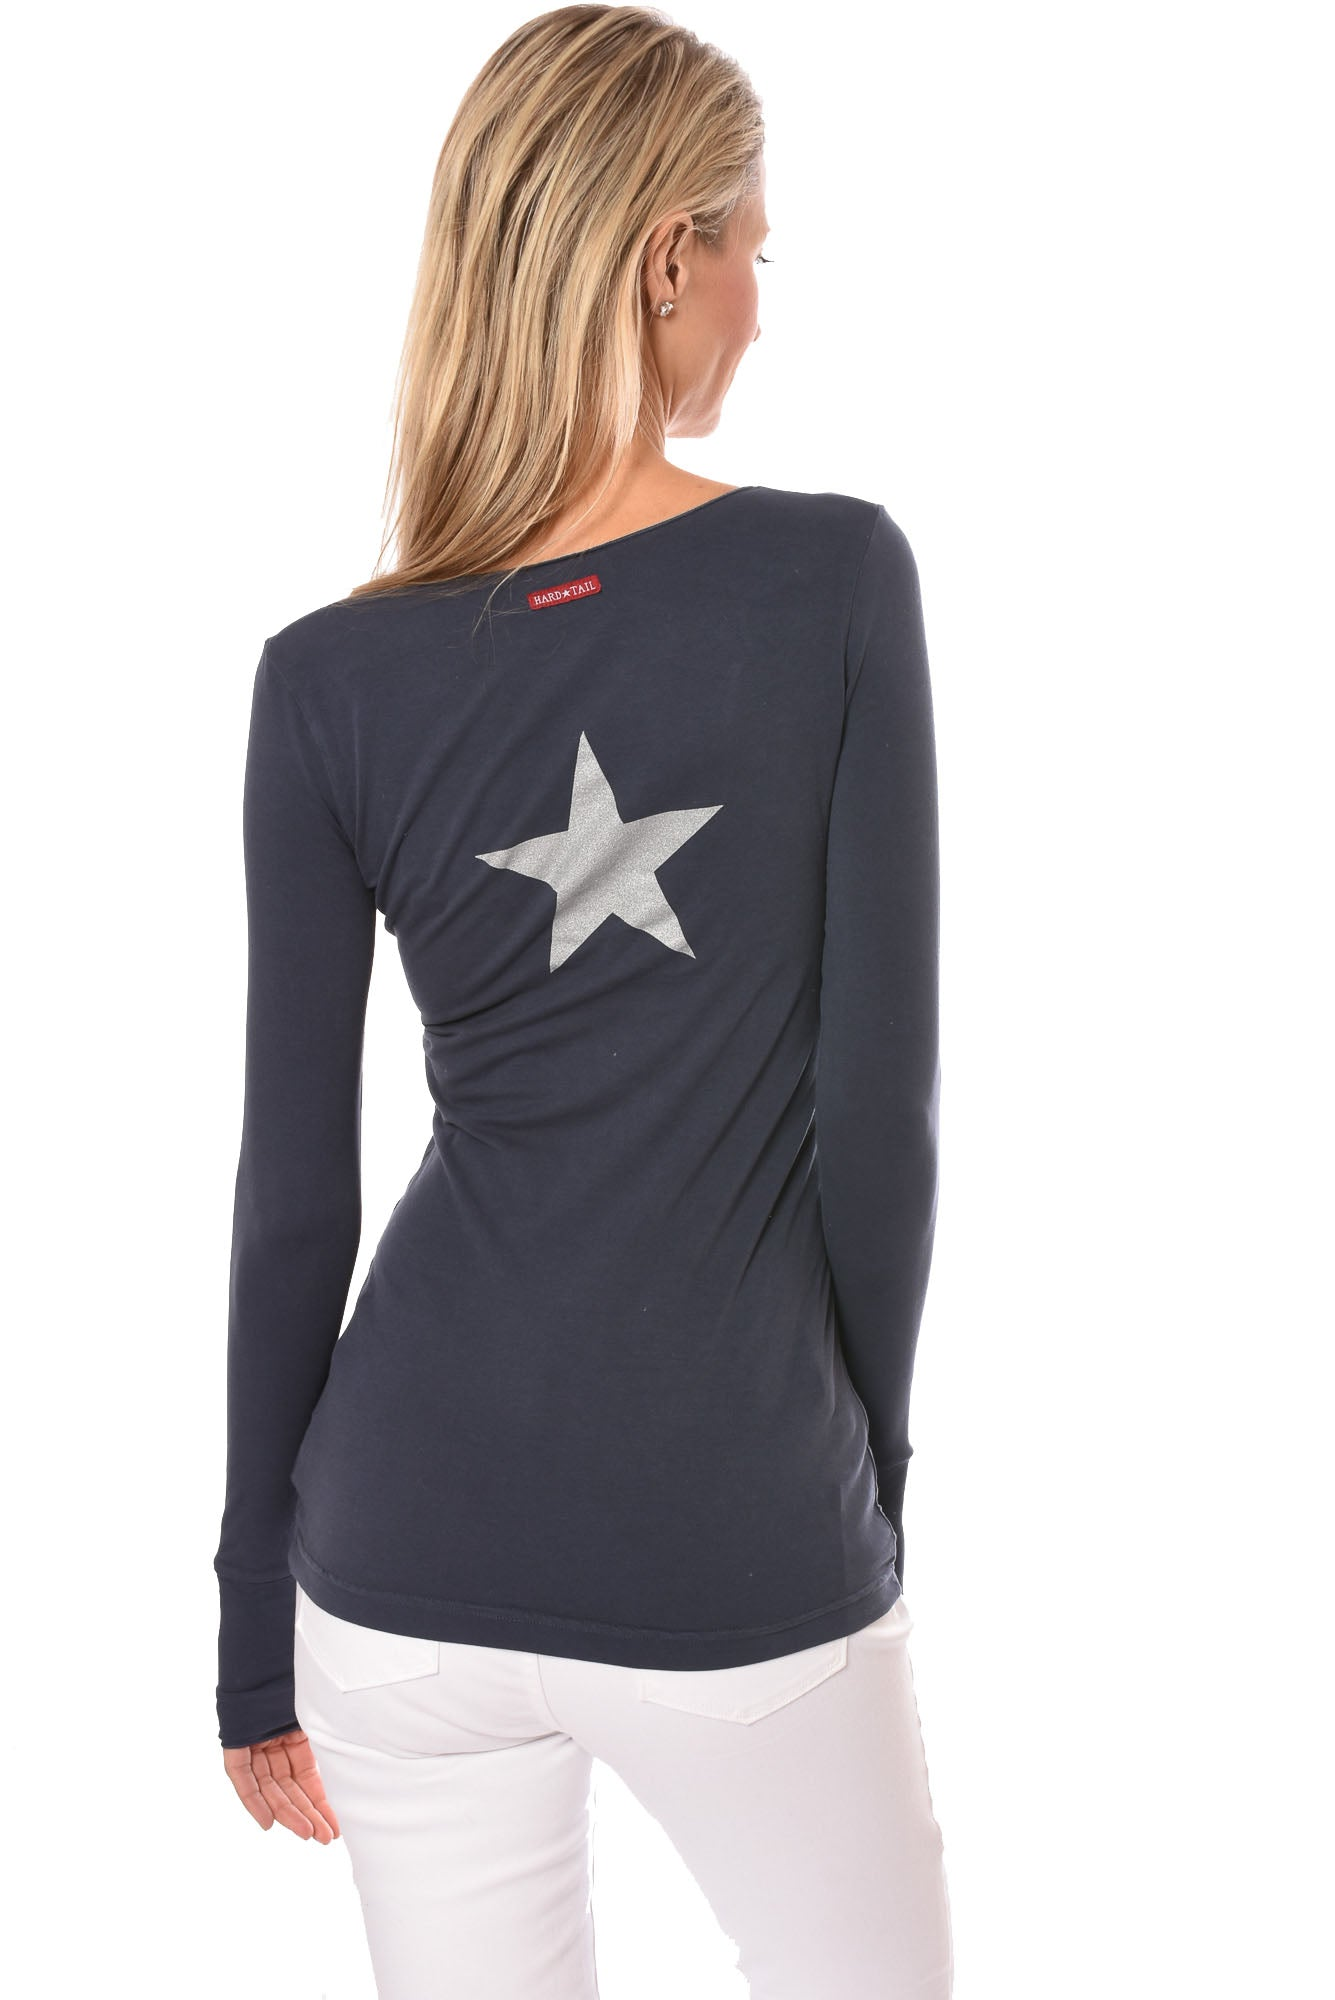 Hard Tail Forever - Long Sleeve Thumbhole w/Silver Star (SL-143-501B, Storm w/Silver Star)